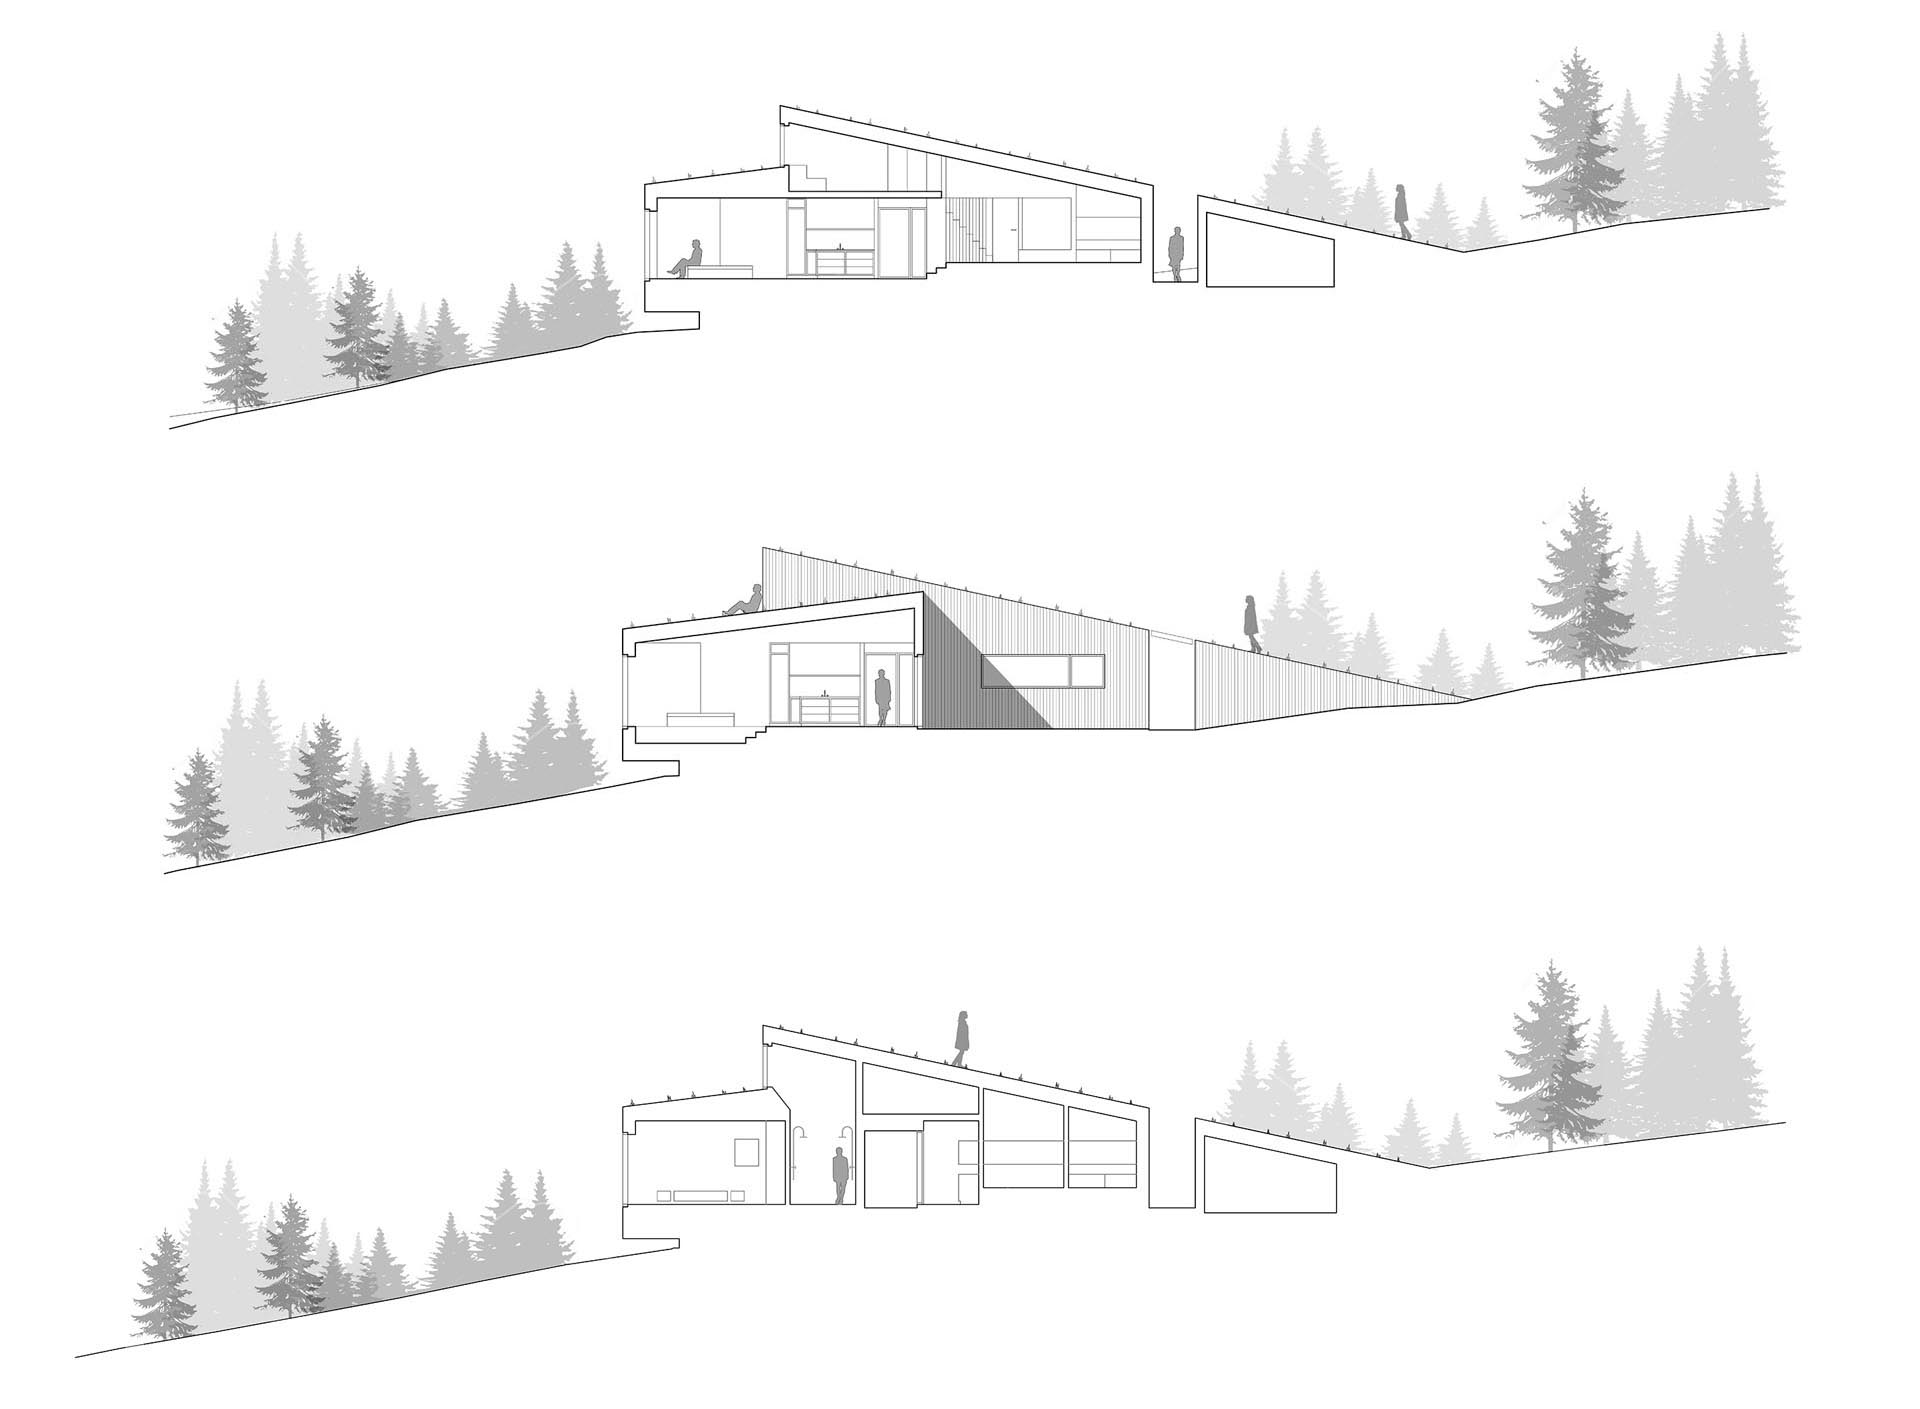 The sections of a modern home.